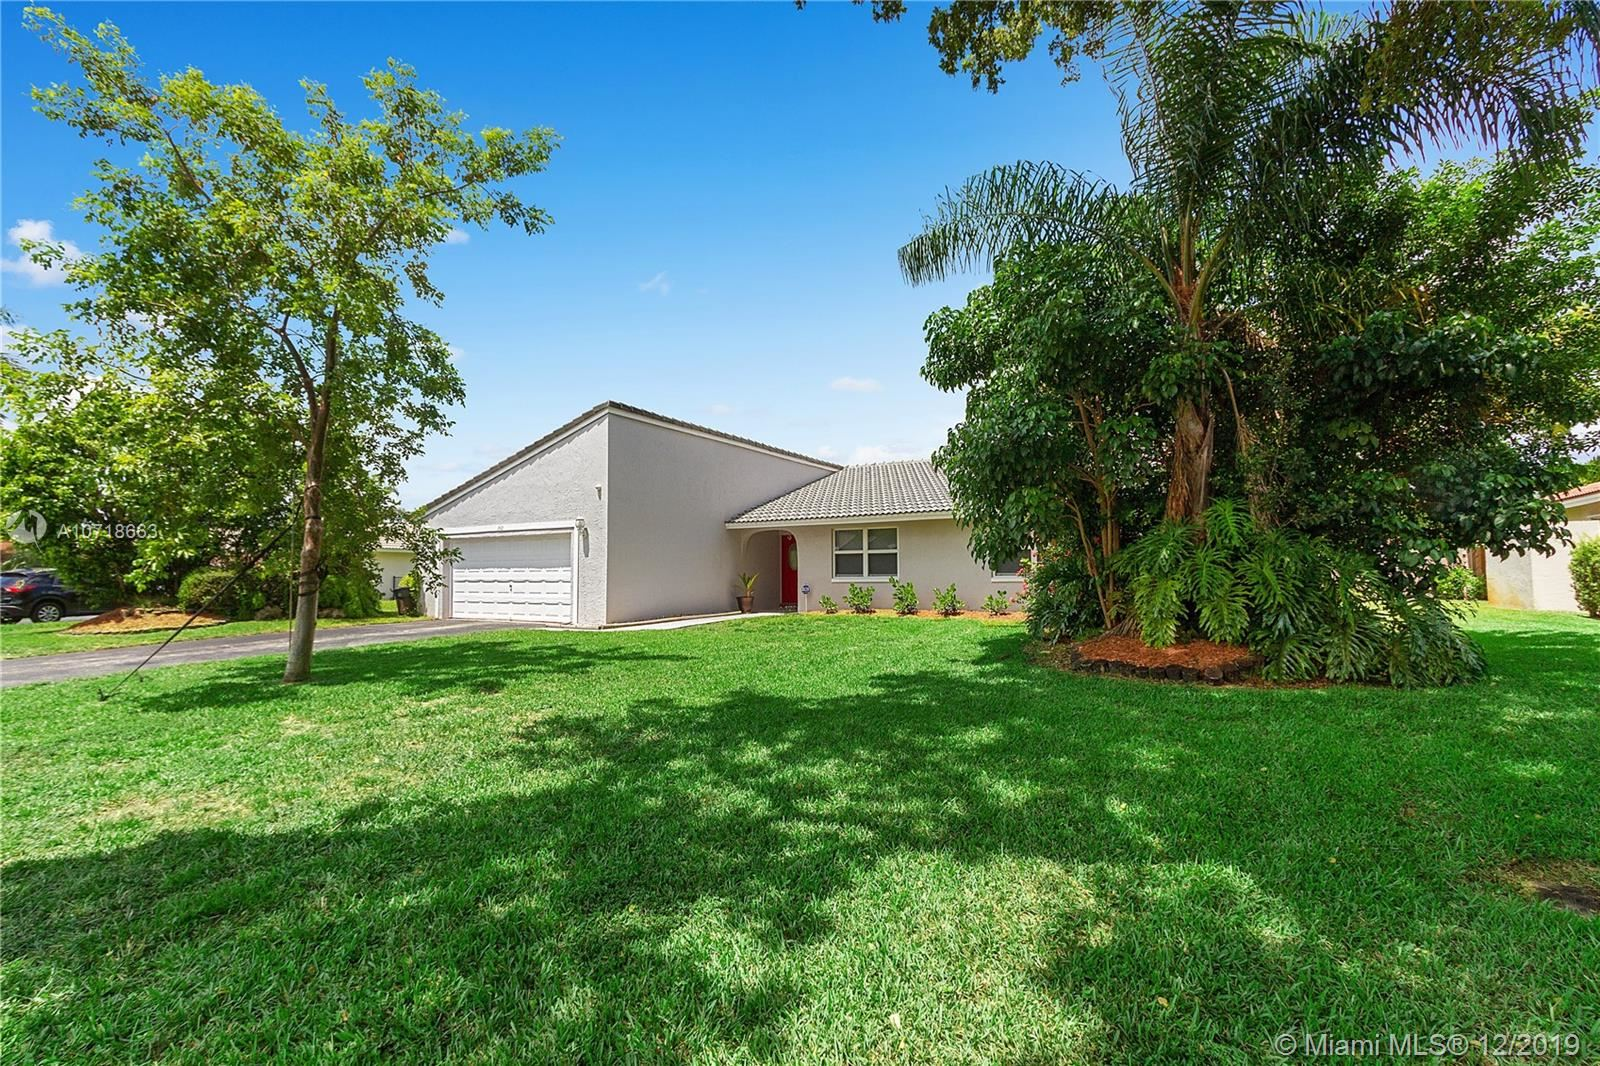 262 NW 92nd Ave, Coral Springs, FL 33071 - MLS#: A10718663